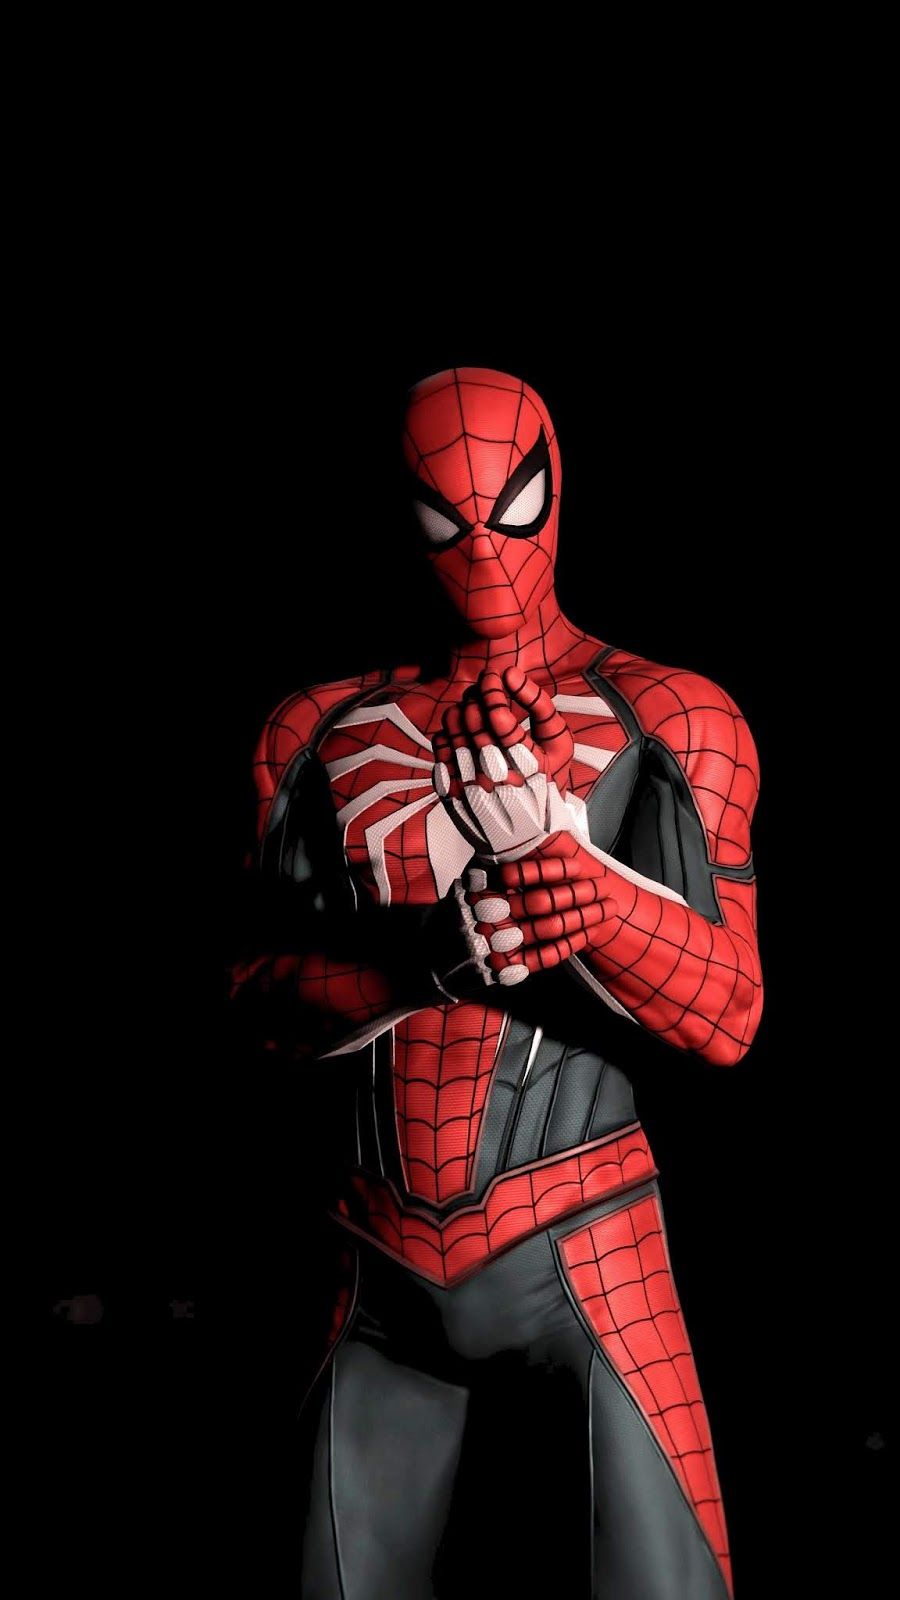 Spiderman Amoled Wallpaper Iphone Android Background Followme Spiderman Marvel Spiderman Spiderman Spider